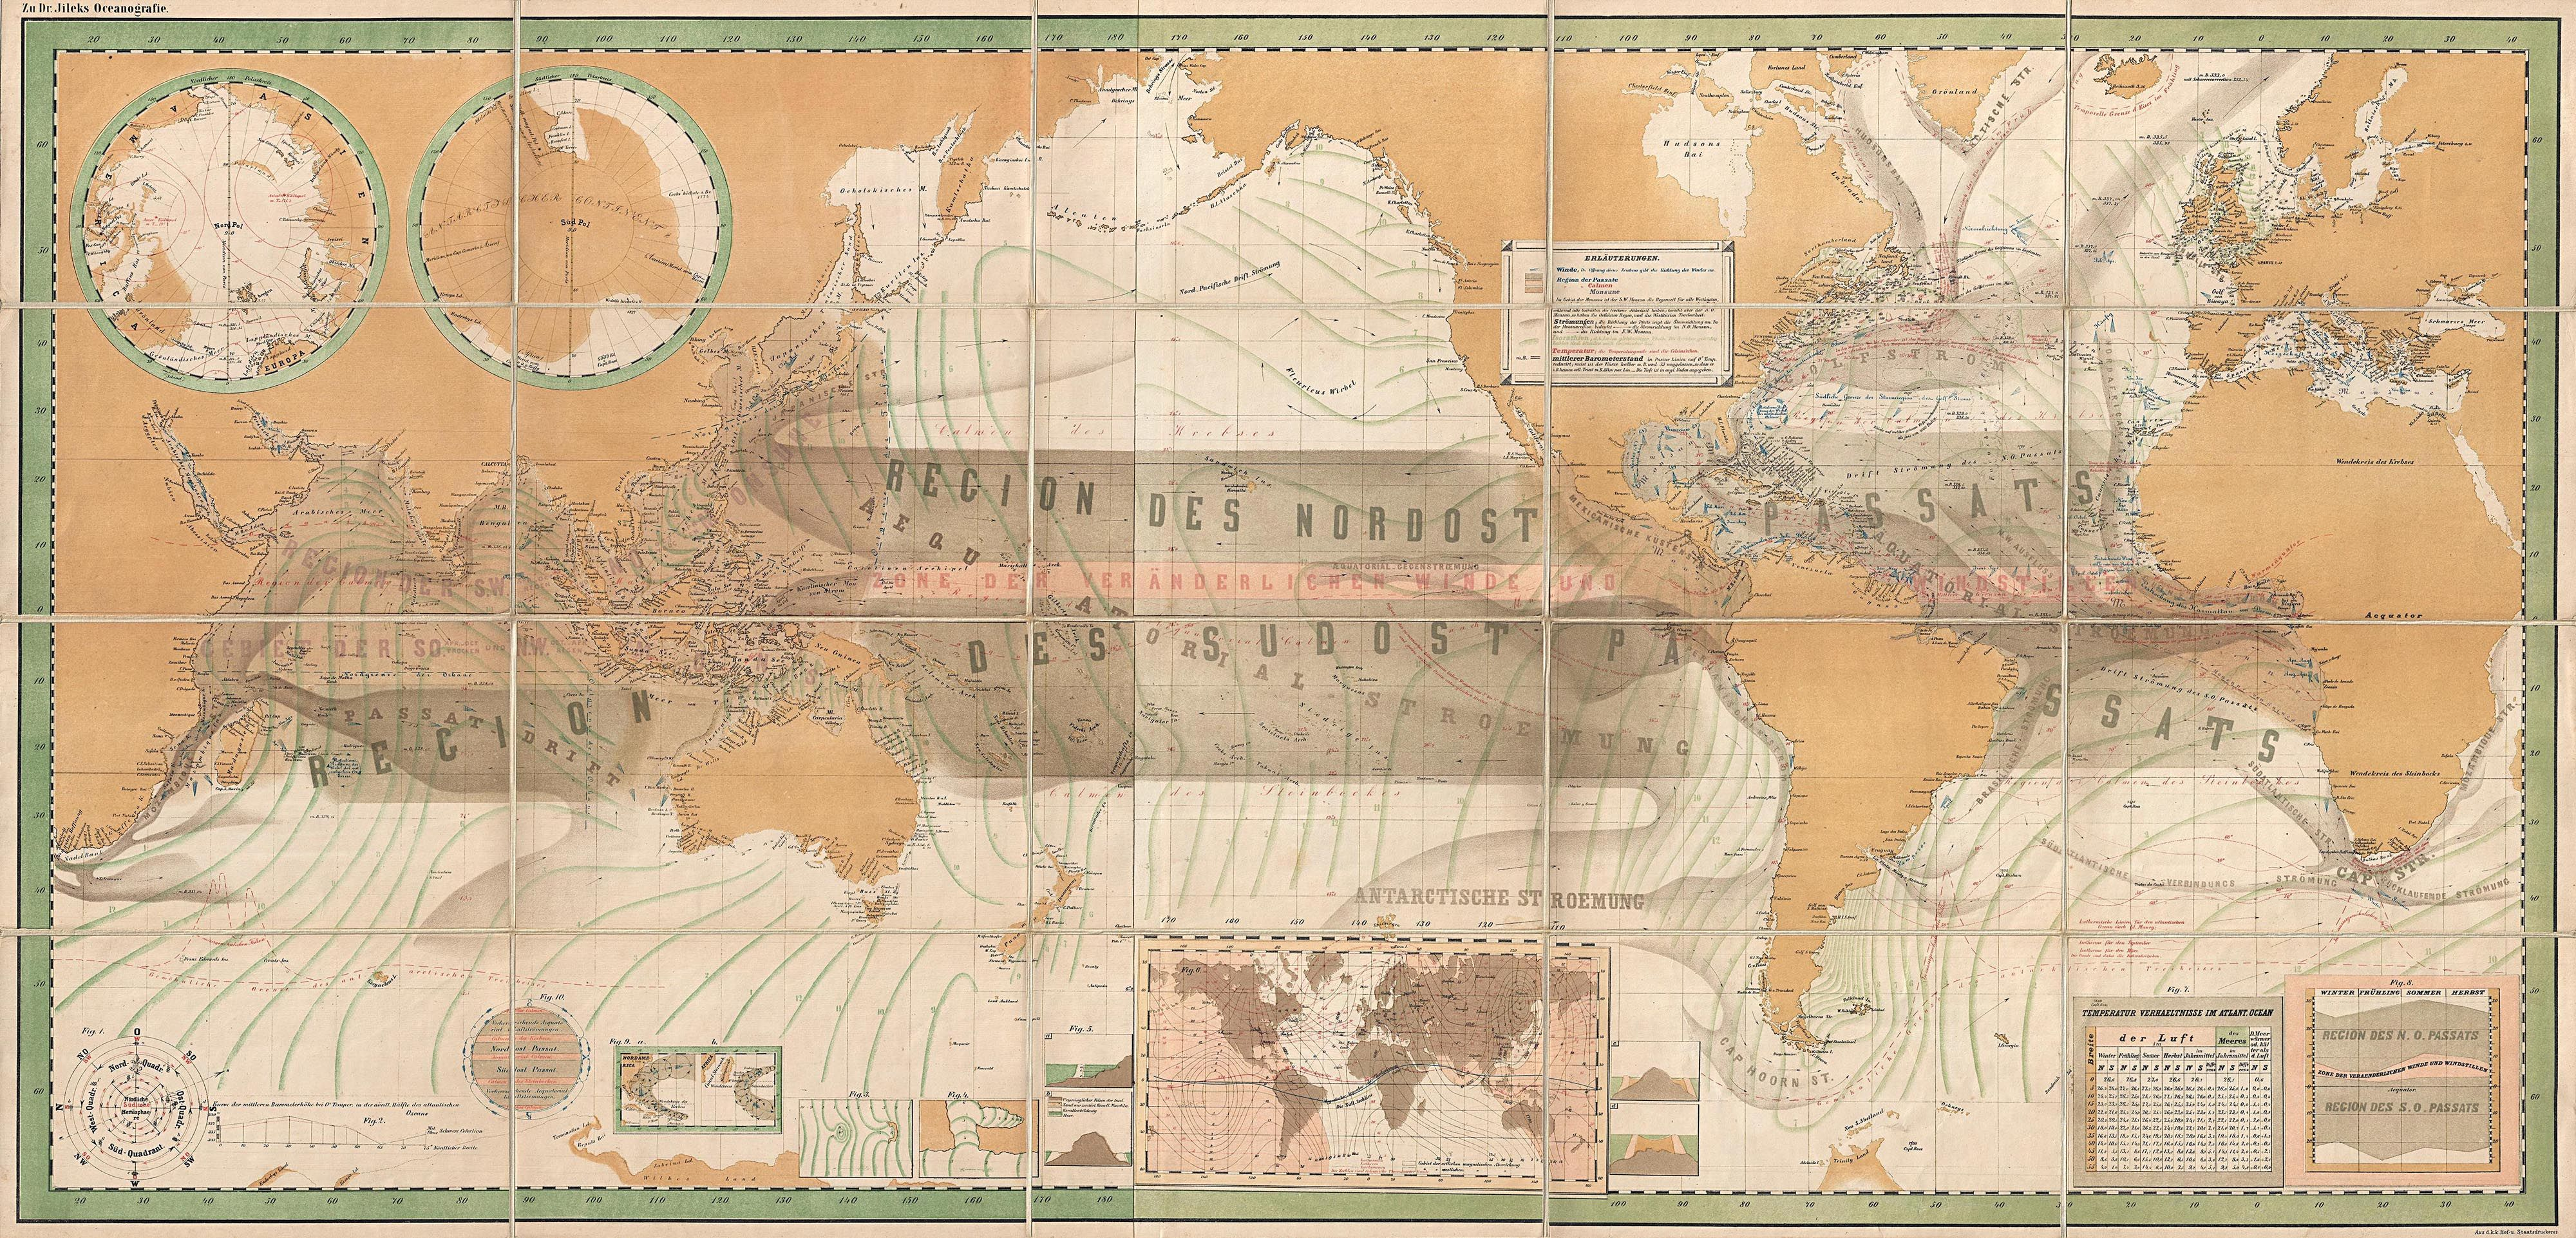 A rare and striking oceanographic world map pinterest artist a rare informative and most attractive oceanographic world map published in vienna and summarizing the state of knowledge in the mid 19th century gumiabroncs Gallery